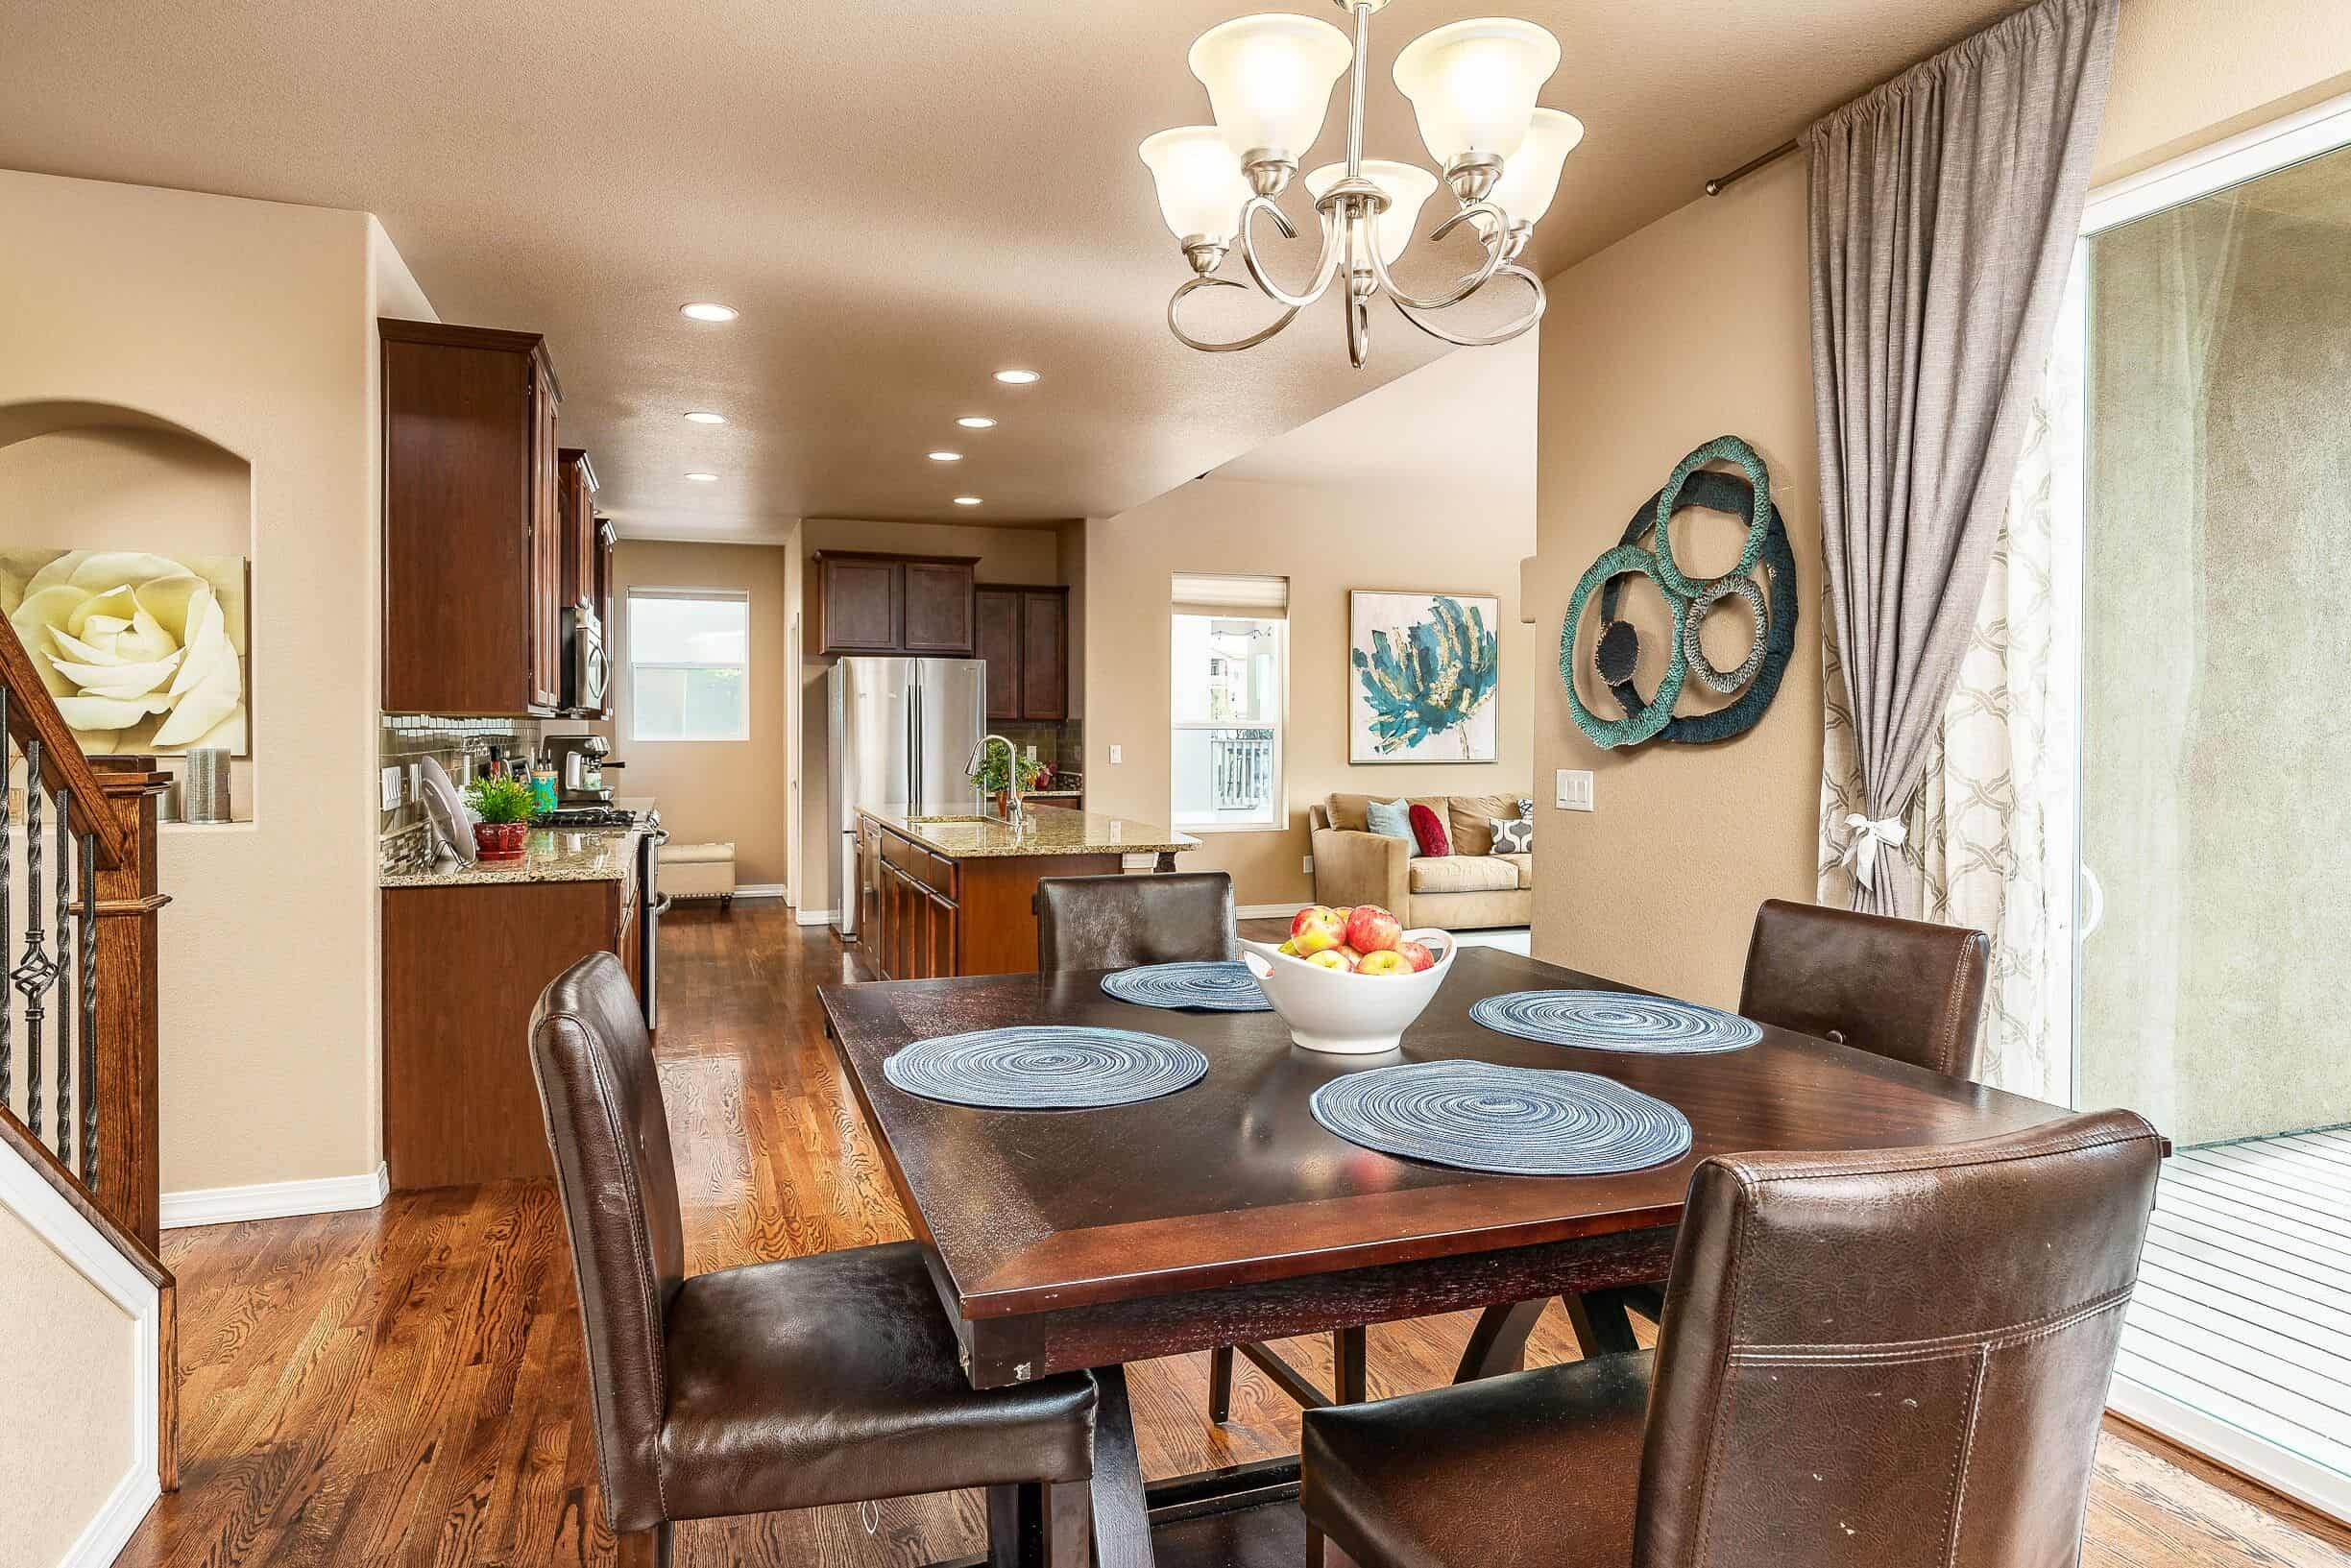 Dining Room into Kitchen